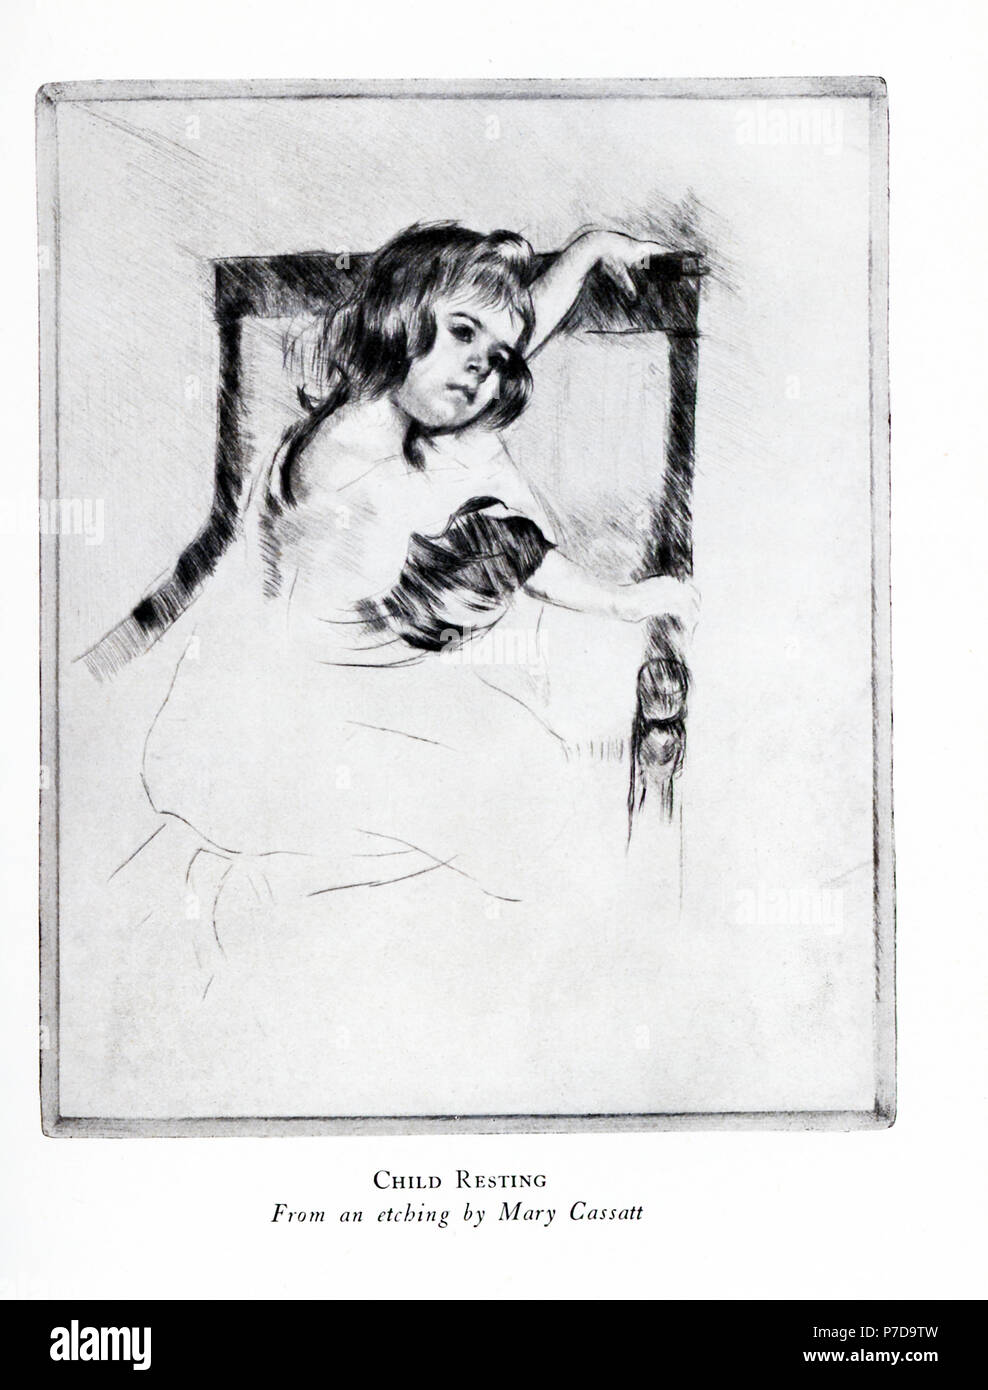 "Mary Cassatt (1844-1926) was the only American artist to exhibit with the impressionists in Paris. She became known for her paintings of domestic moments, especially her pictures of women and children. Her works were among the first impressionist works seen in the United States. This etching is titled ""Child Resting."" - Stock Image"